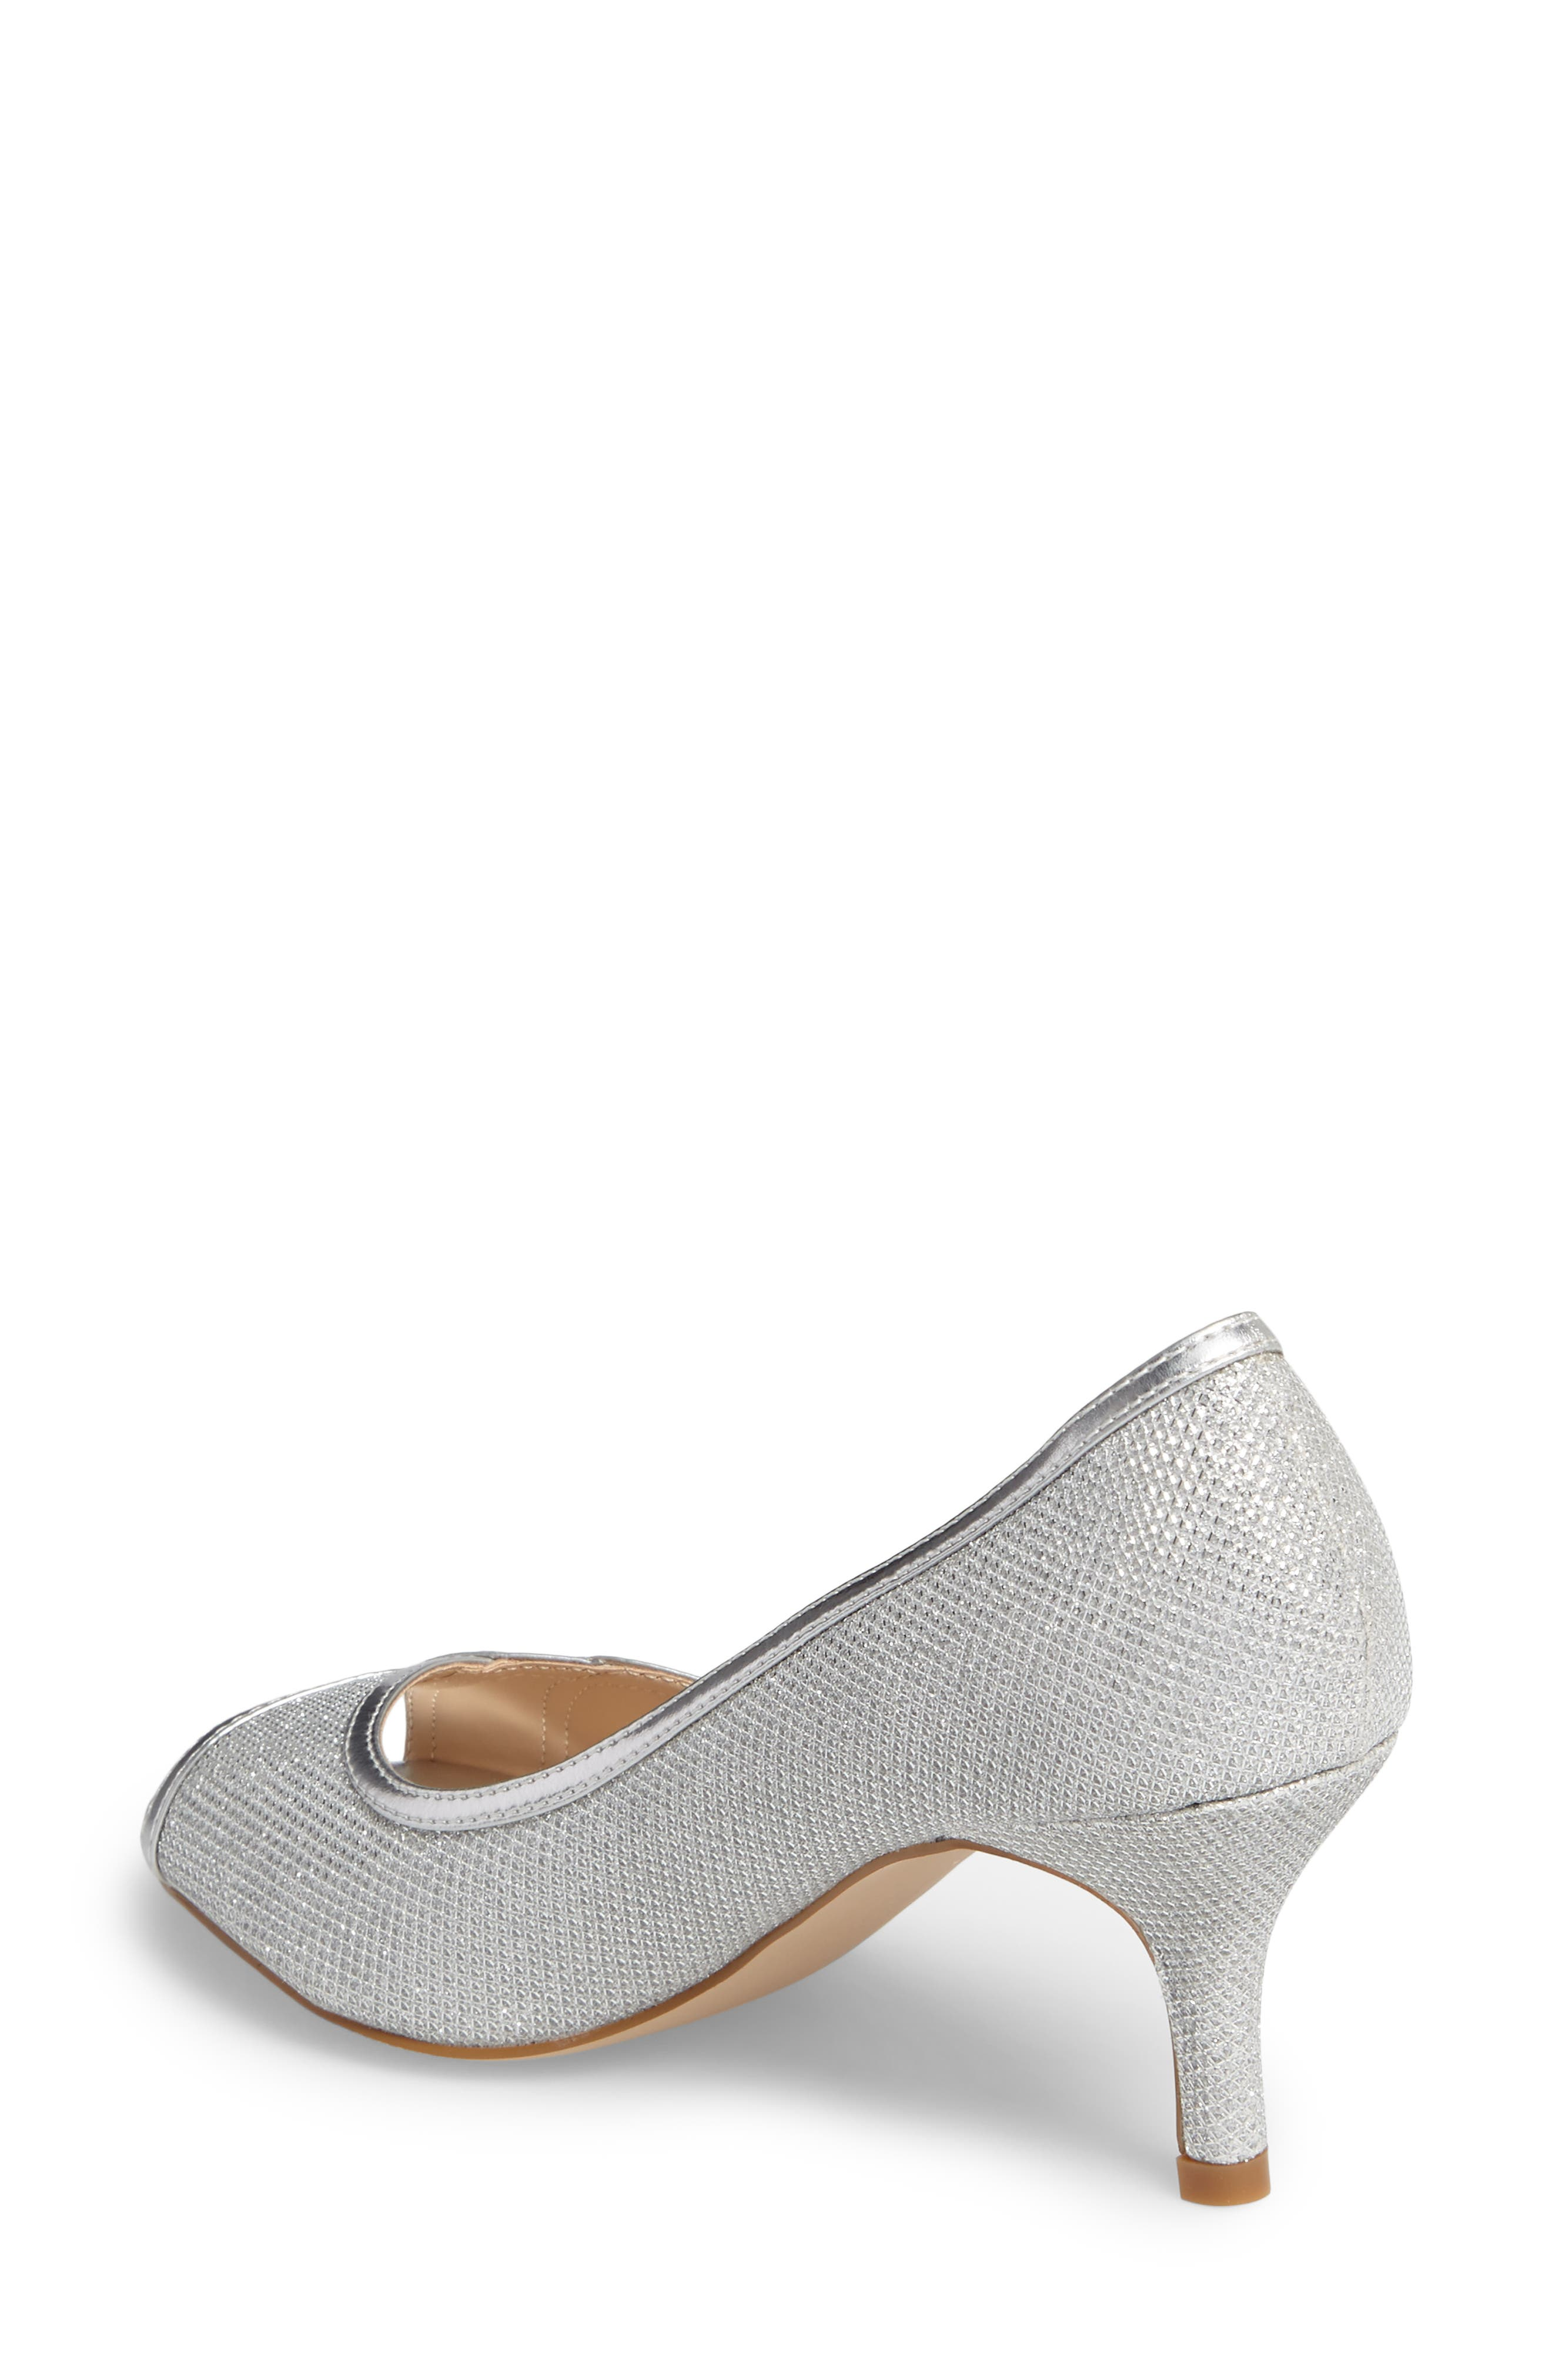 Chester Peep Toe Pump,                             Alternate thumbnail 2, color,                             SILVER